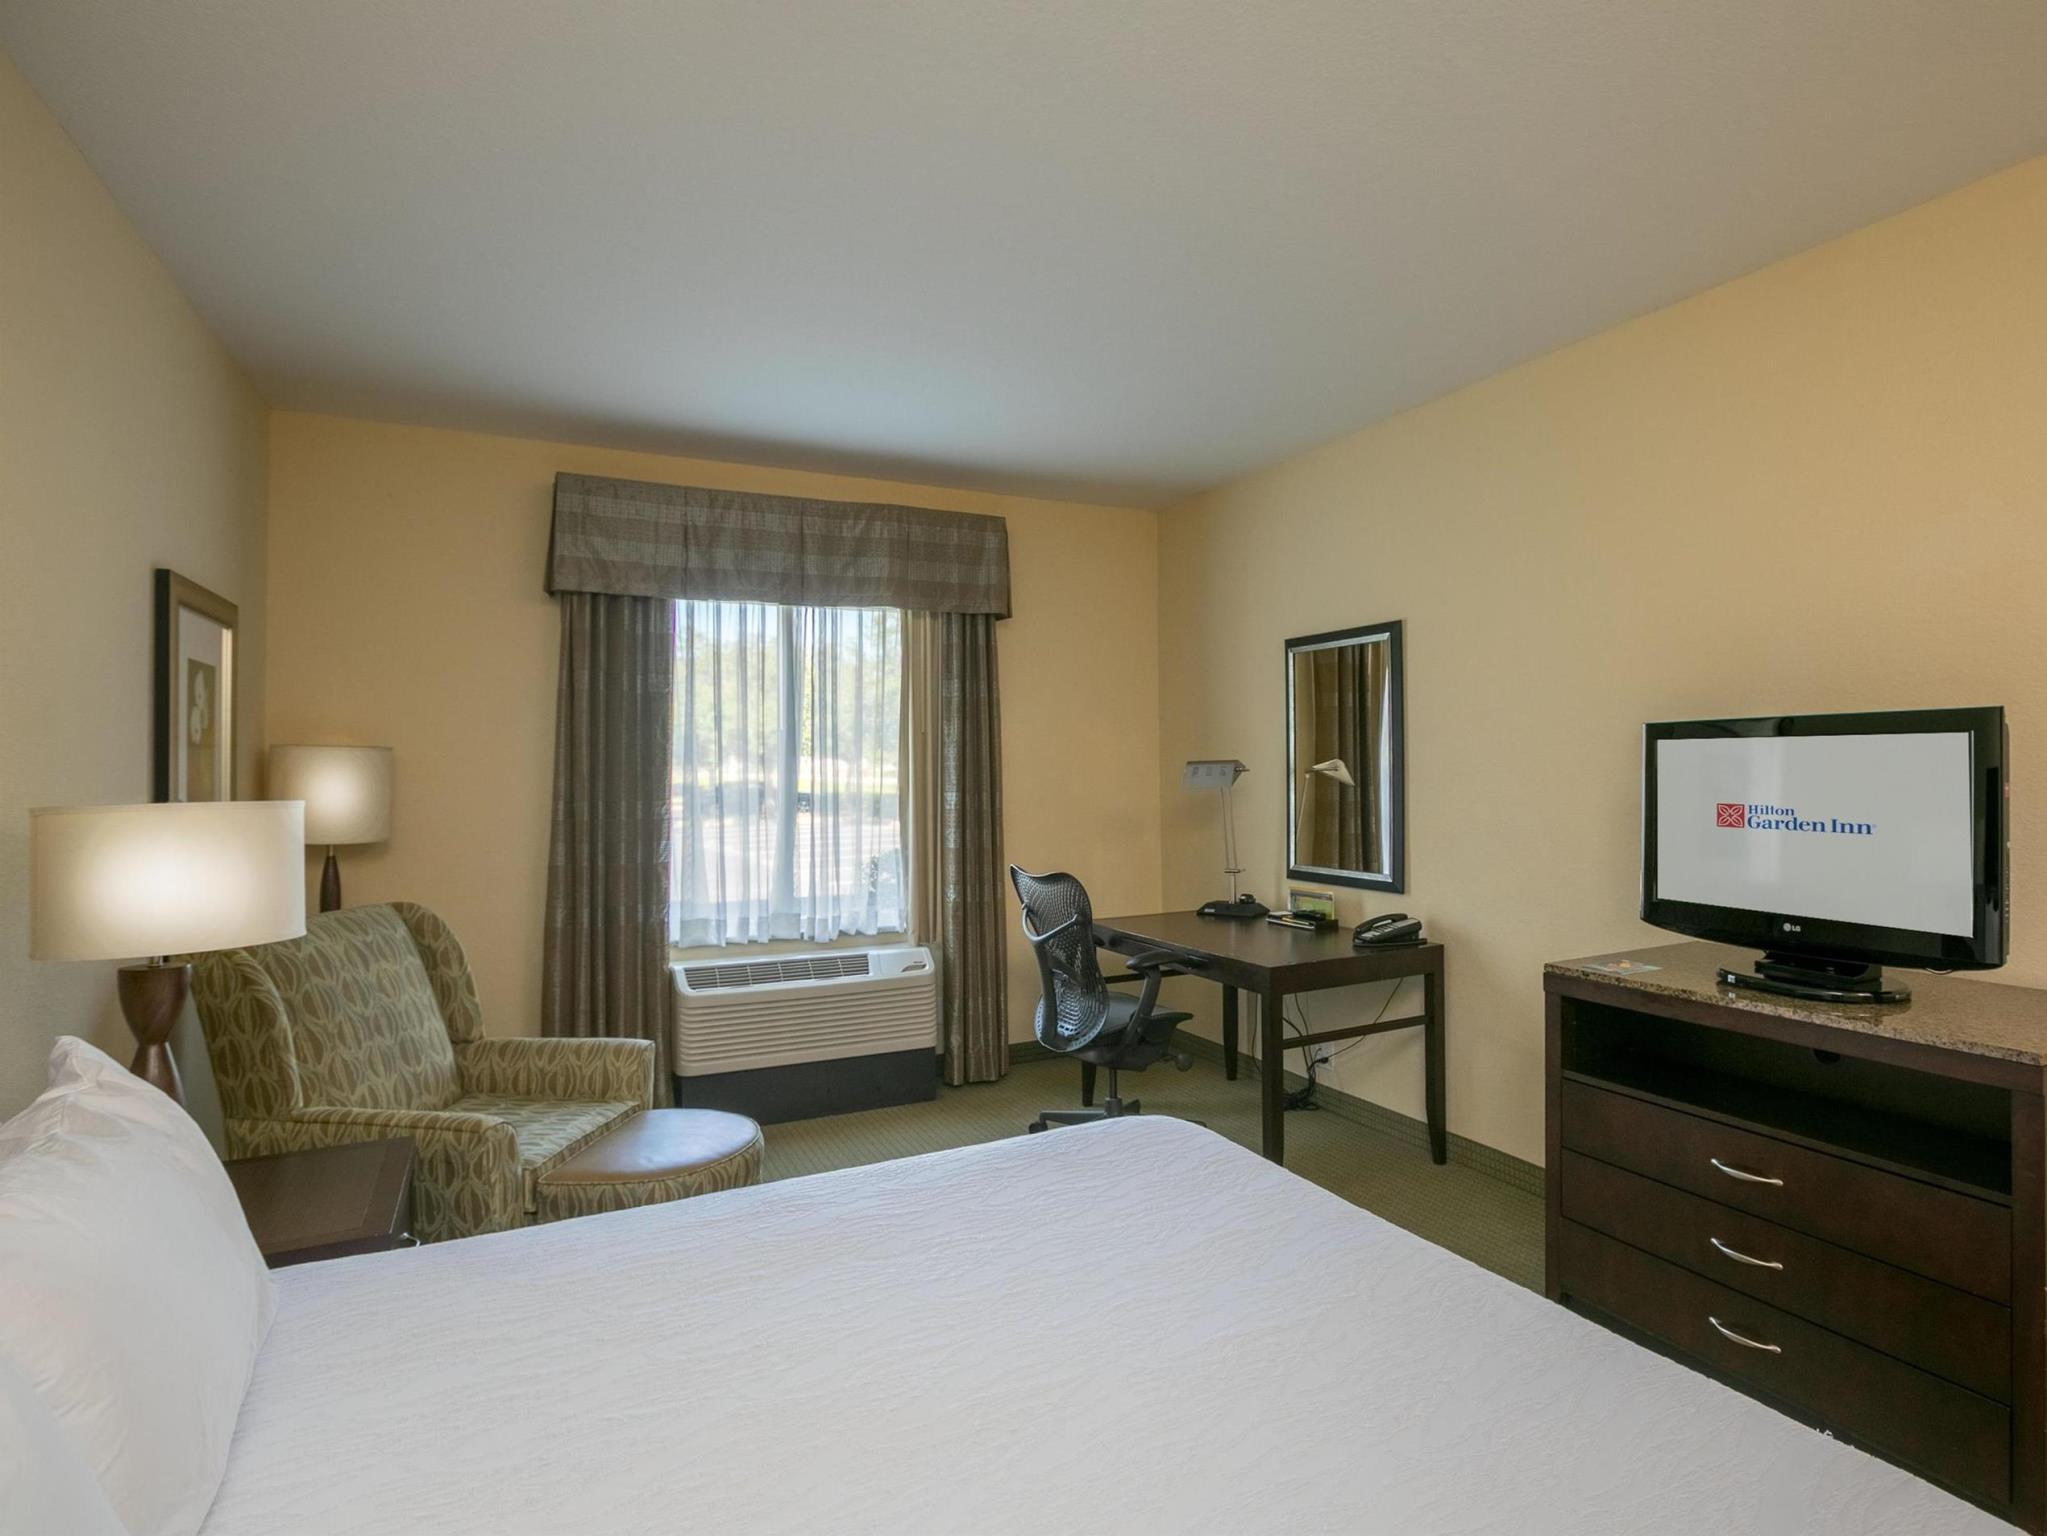 1 King Bed Hilton Garden Inn Lakeland